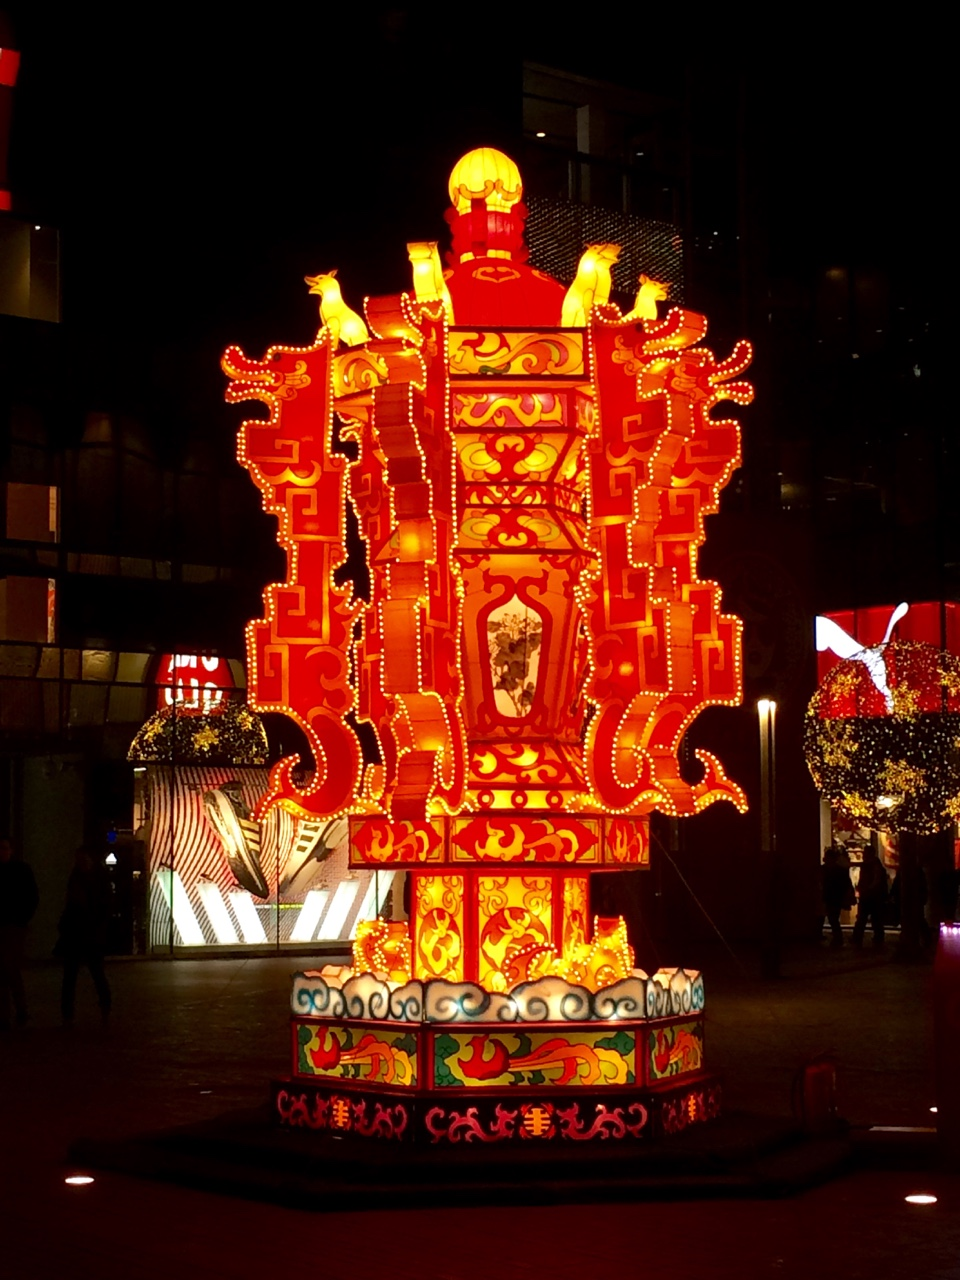 Newest installment in the Sanlitun Village. For those who can't tell, it's a giant lantern for Spring Festival. Headed to France tomorrow night and then Munich the day after. Happy holidays from China!